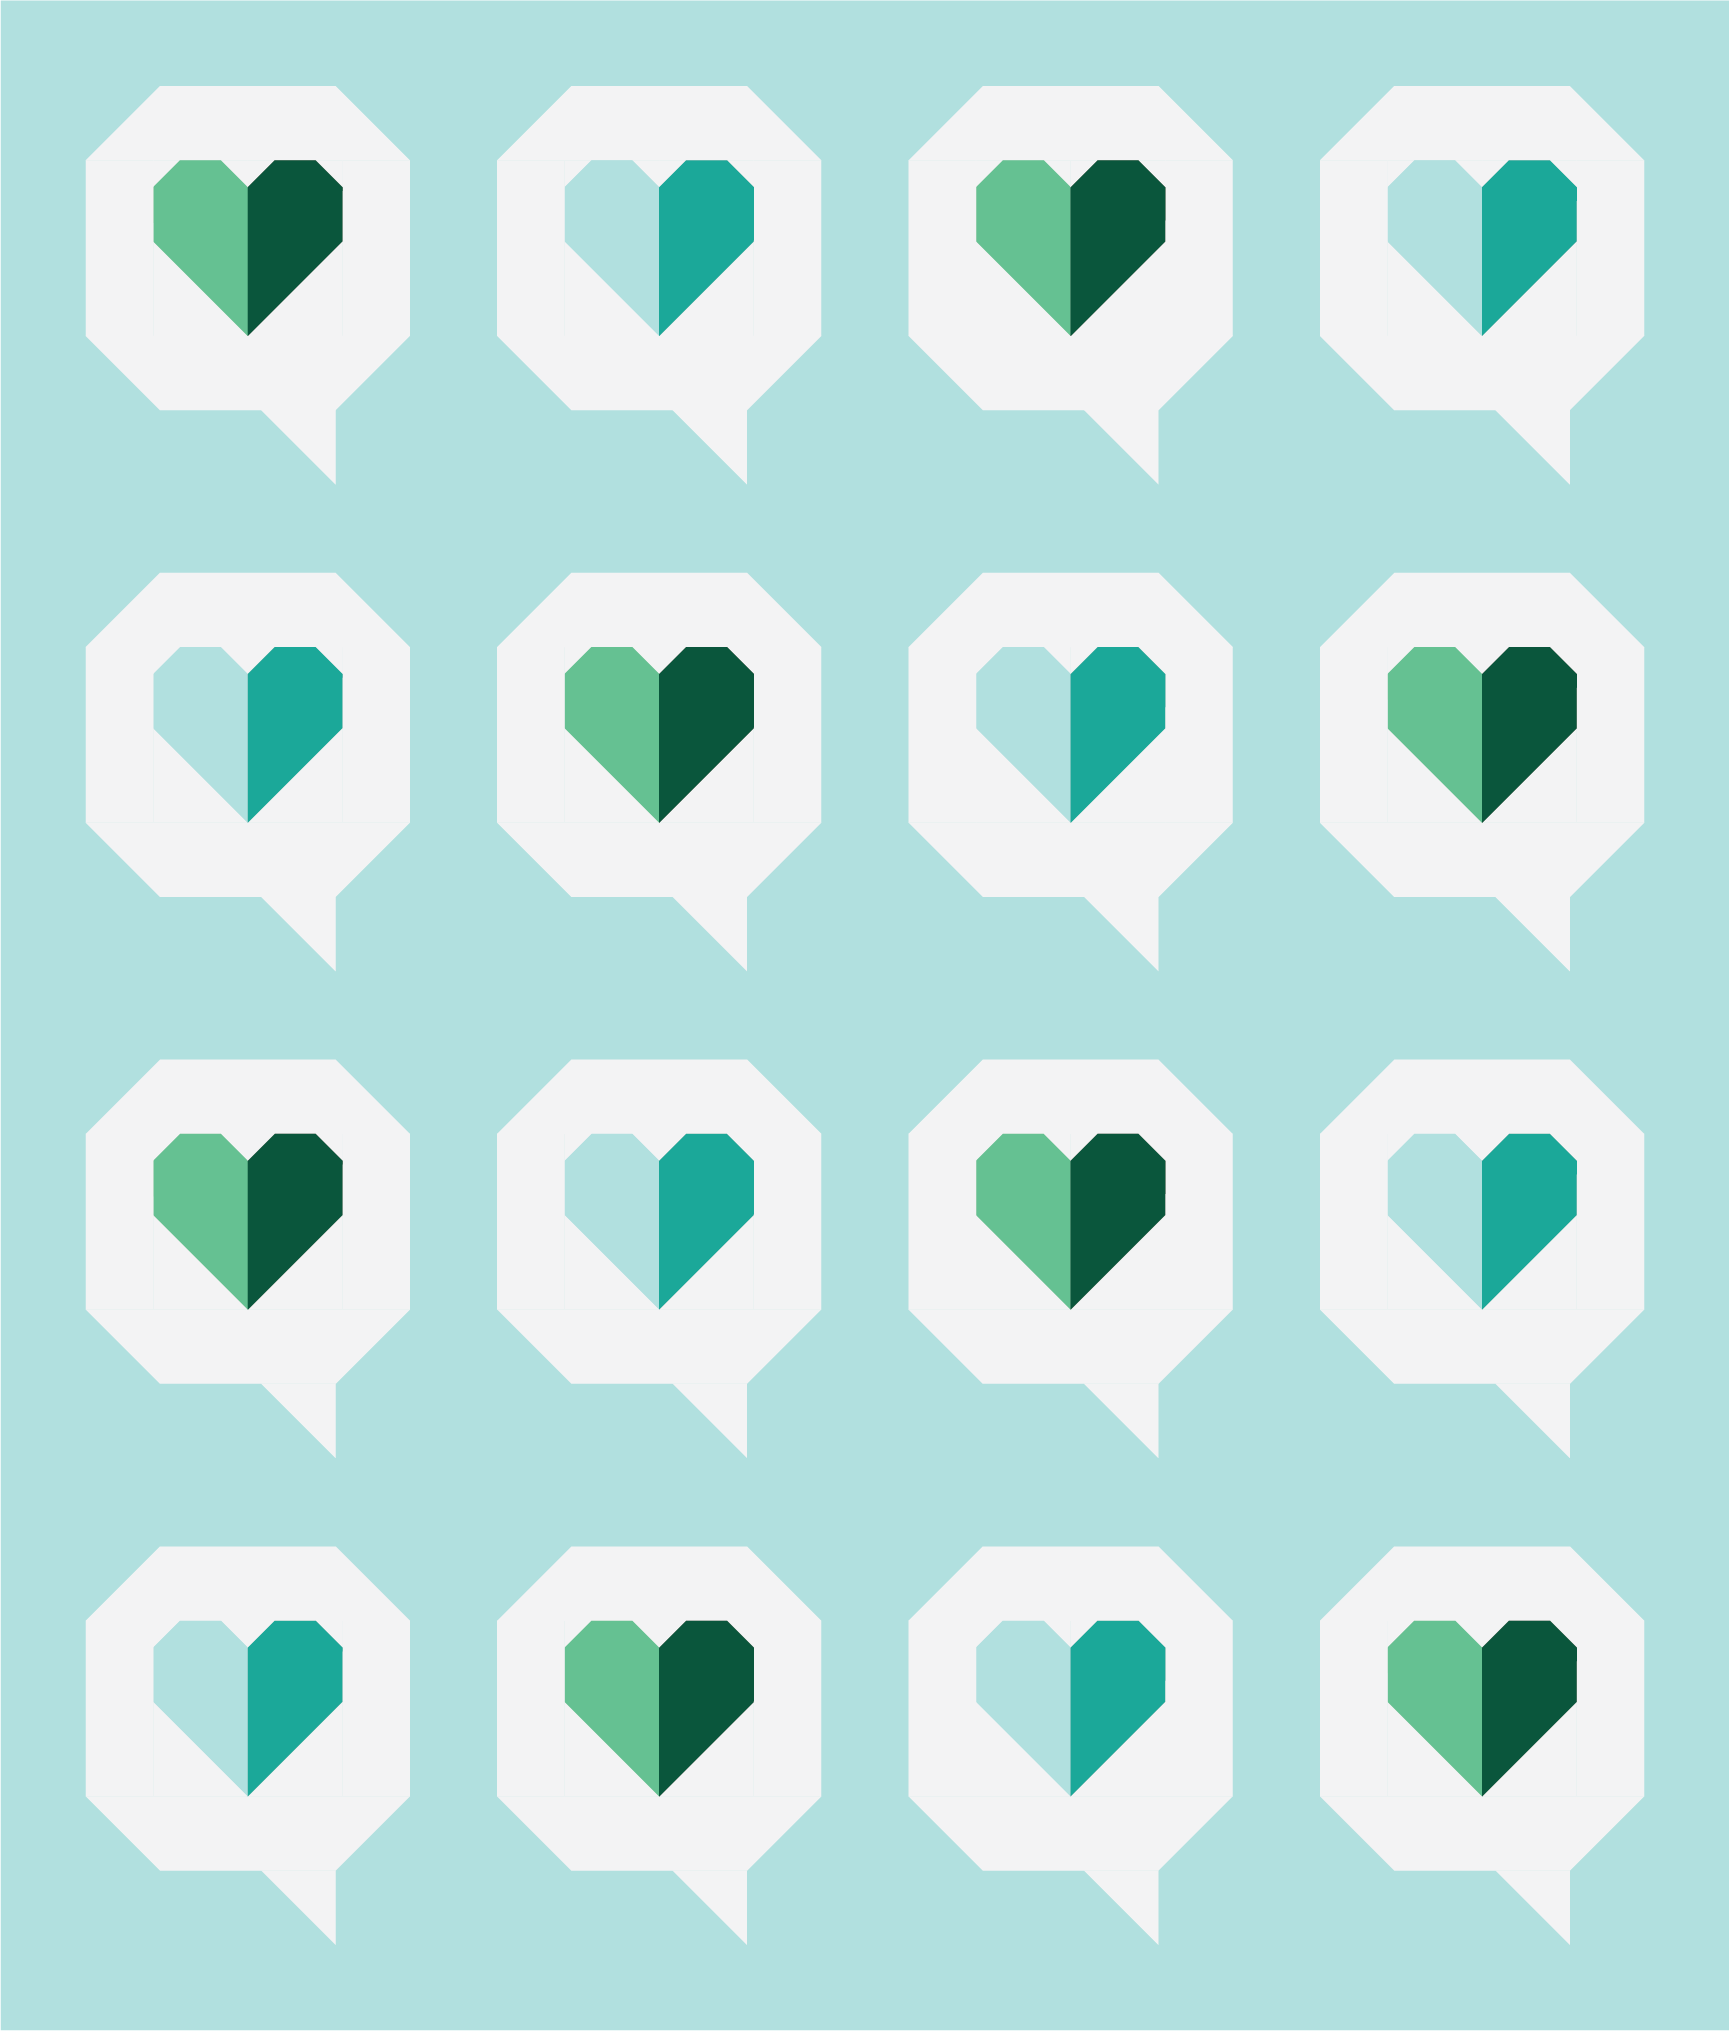 I Heart You Quilt by Then Came June: Green Cyan version by Sewfinity